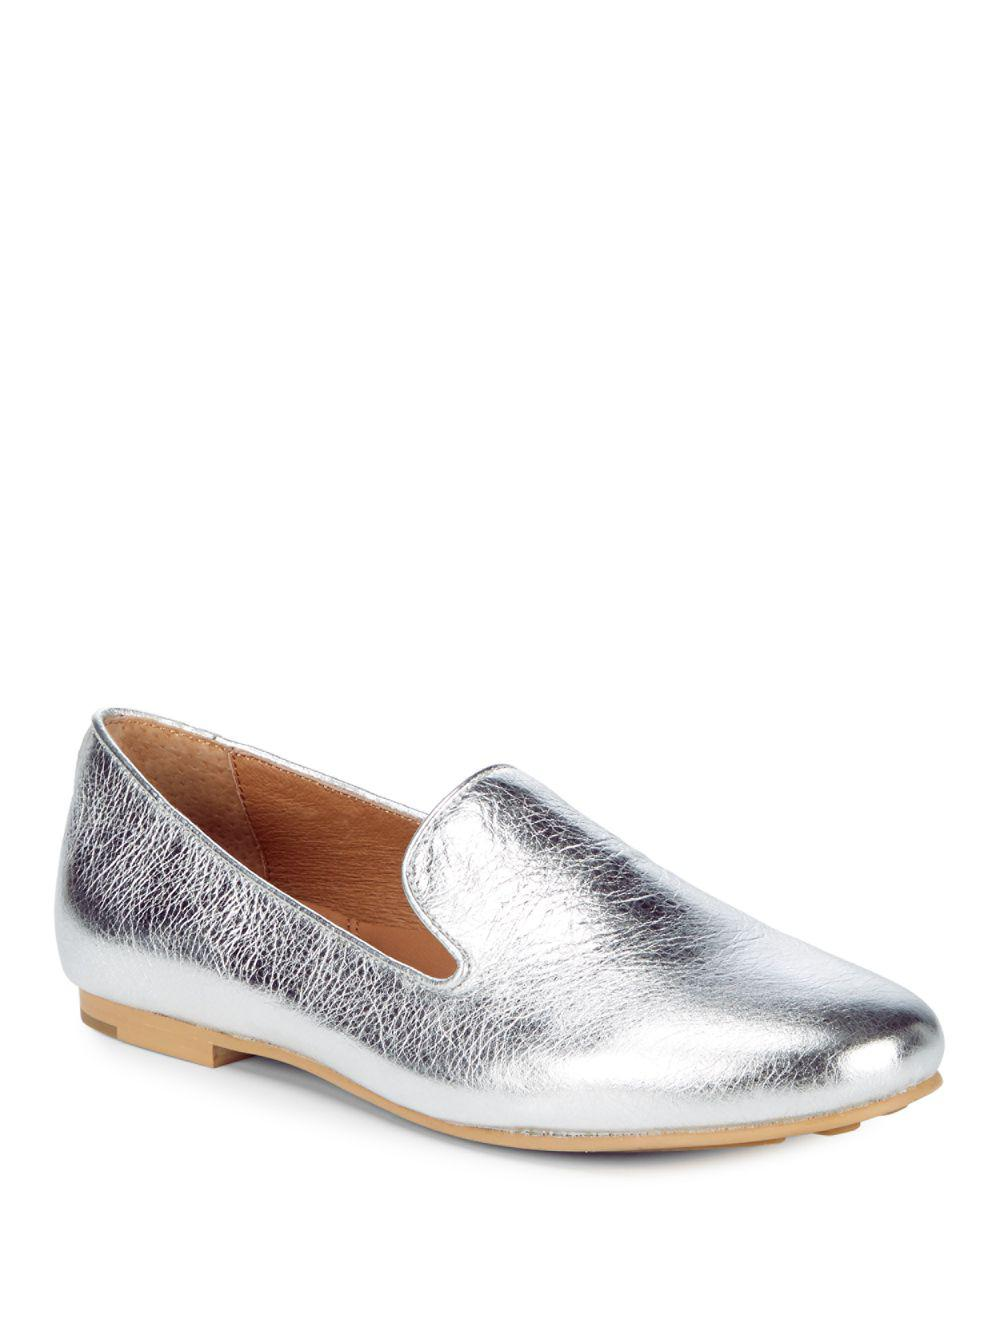 Eugene Metallic Leather Slip-on Loafer Gentle Souls ztY1as